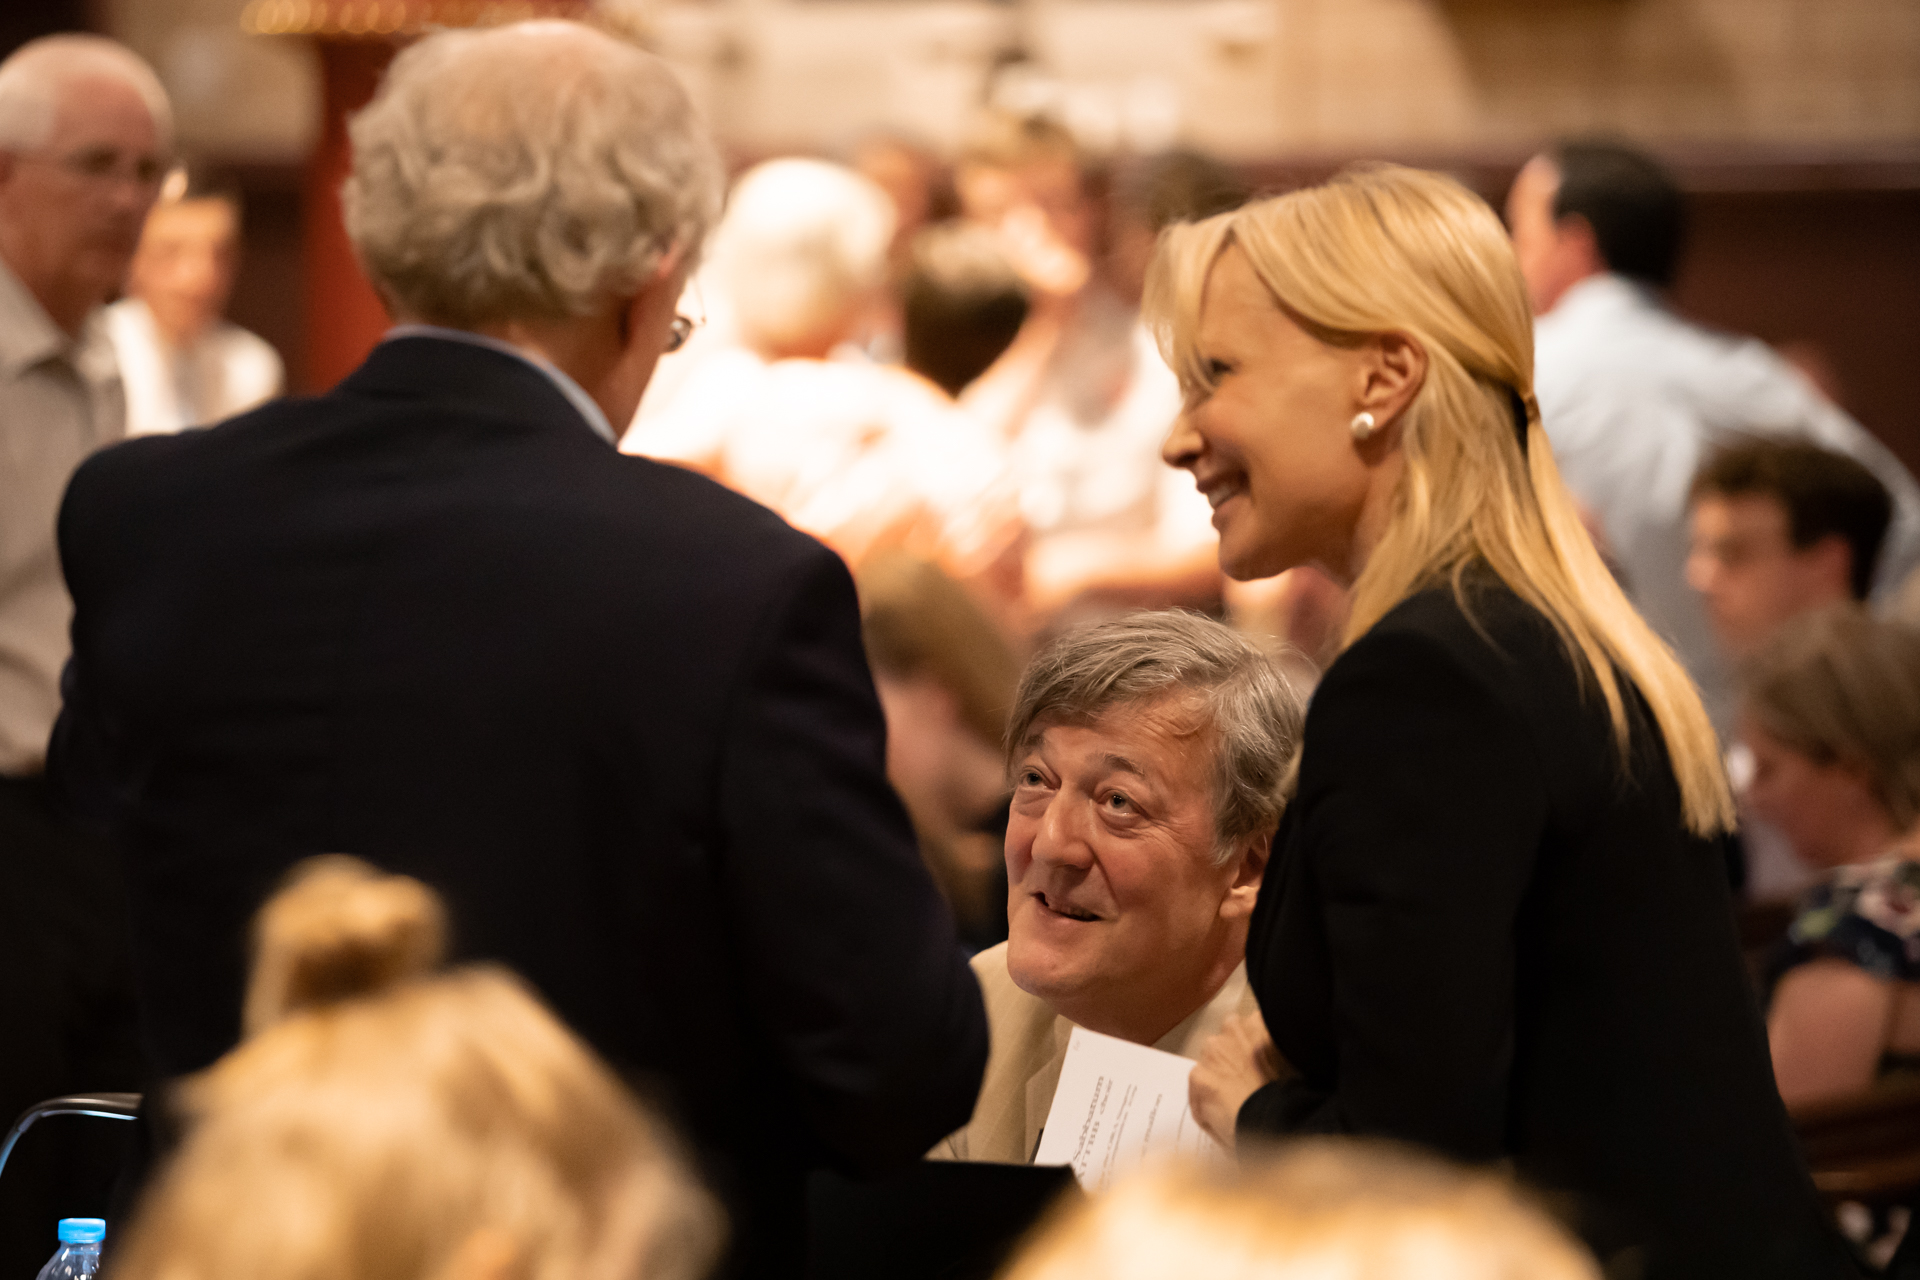 Winners announced for first Composer Competition - 02/08/19ORA Singers' President, Stephen Fry, announces the winners at the final concert of group's first ever Composer Competition, at King's College London.